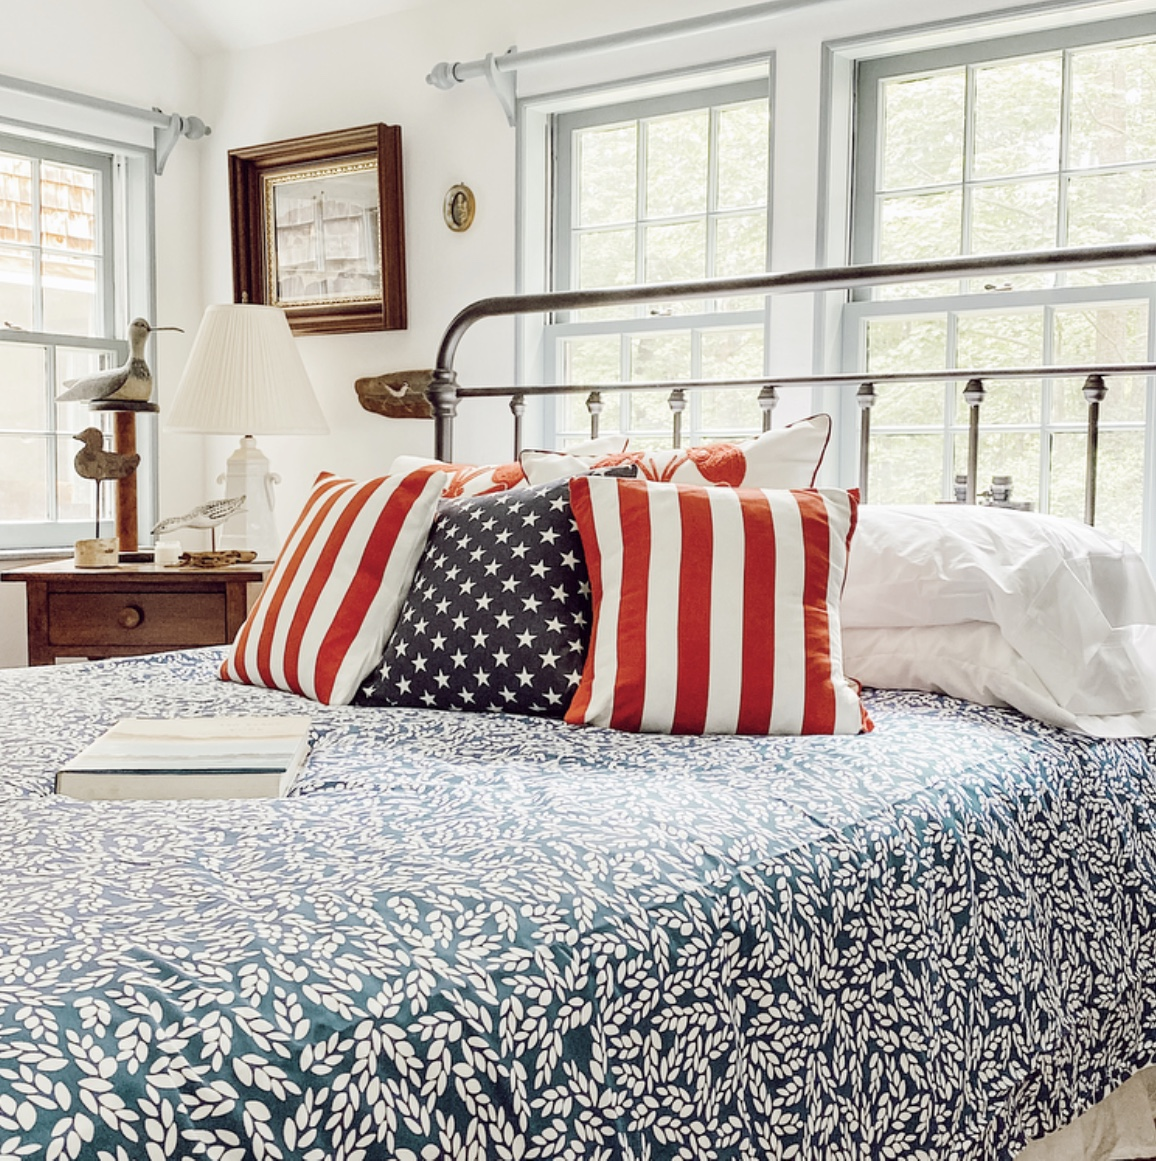 Decorating with Red, White, and Blue in